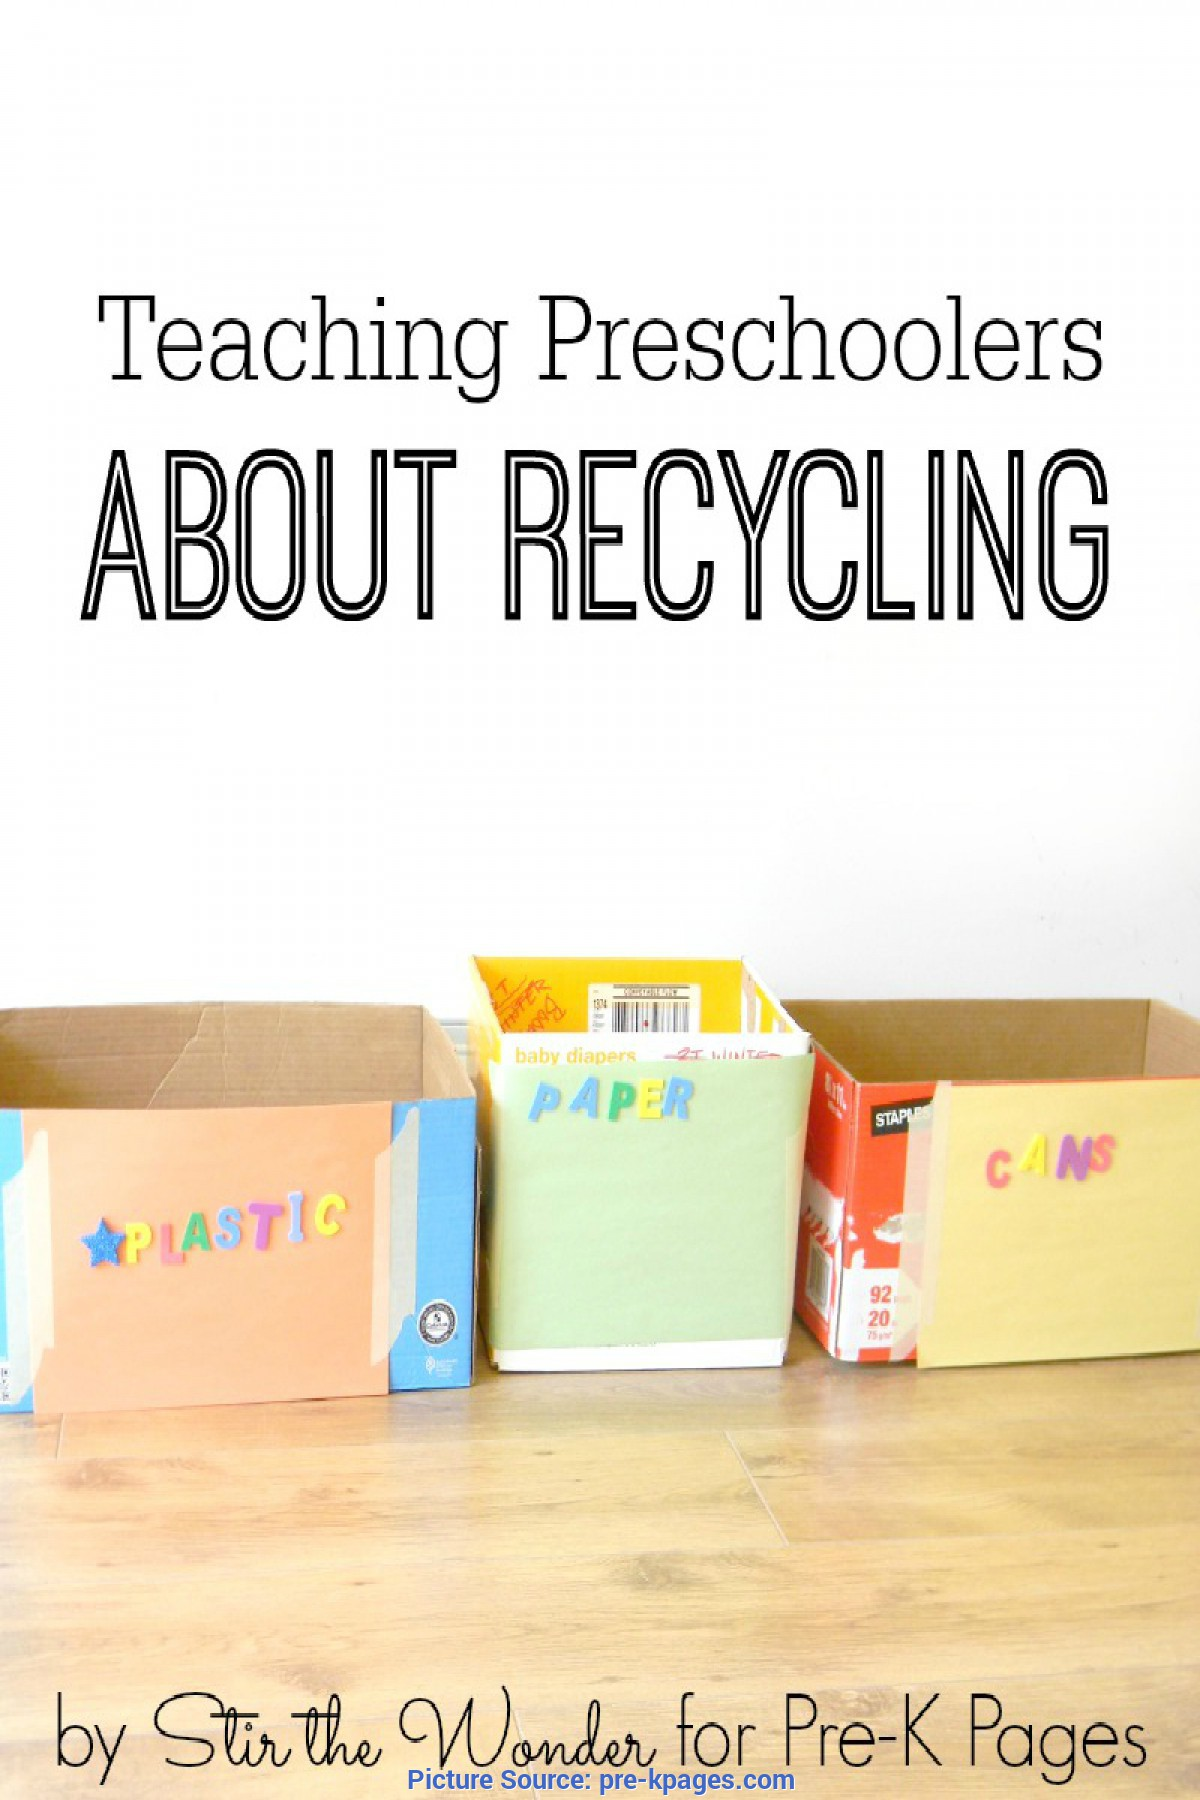 Simple Kindergarten Lesson Plans Recycling Talking About Recycling With Preschoolers - Pre-K P